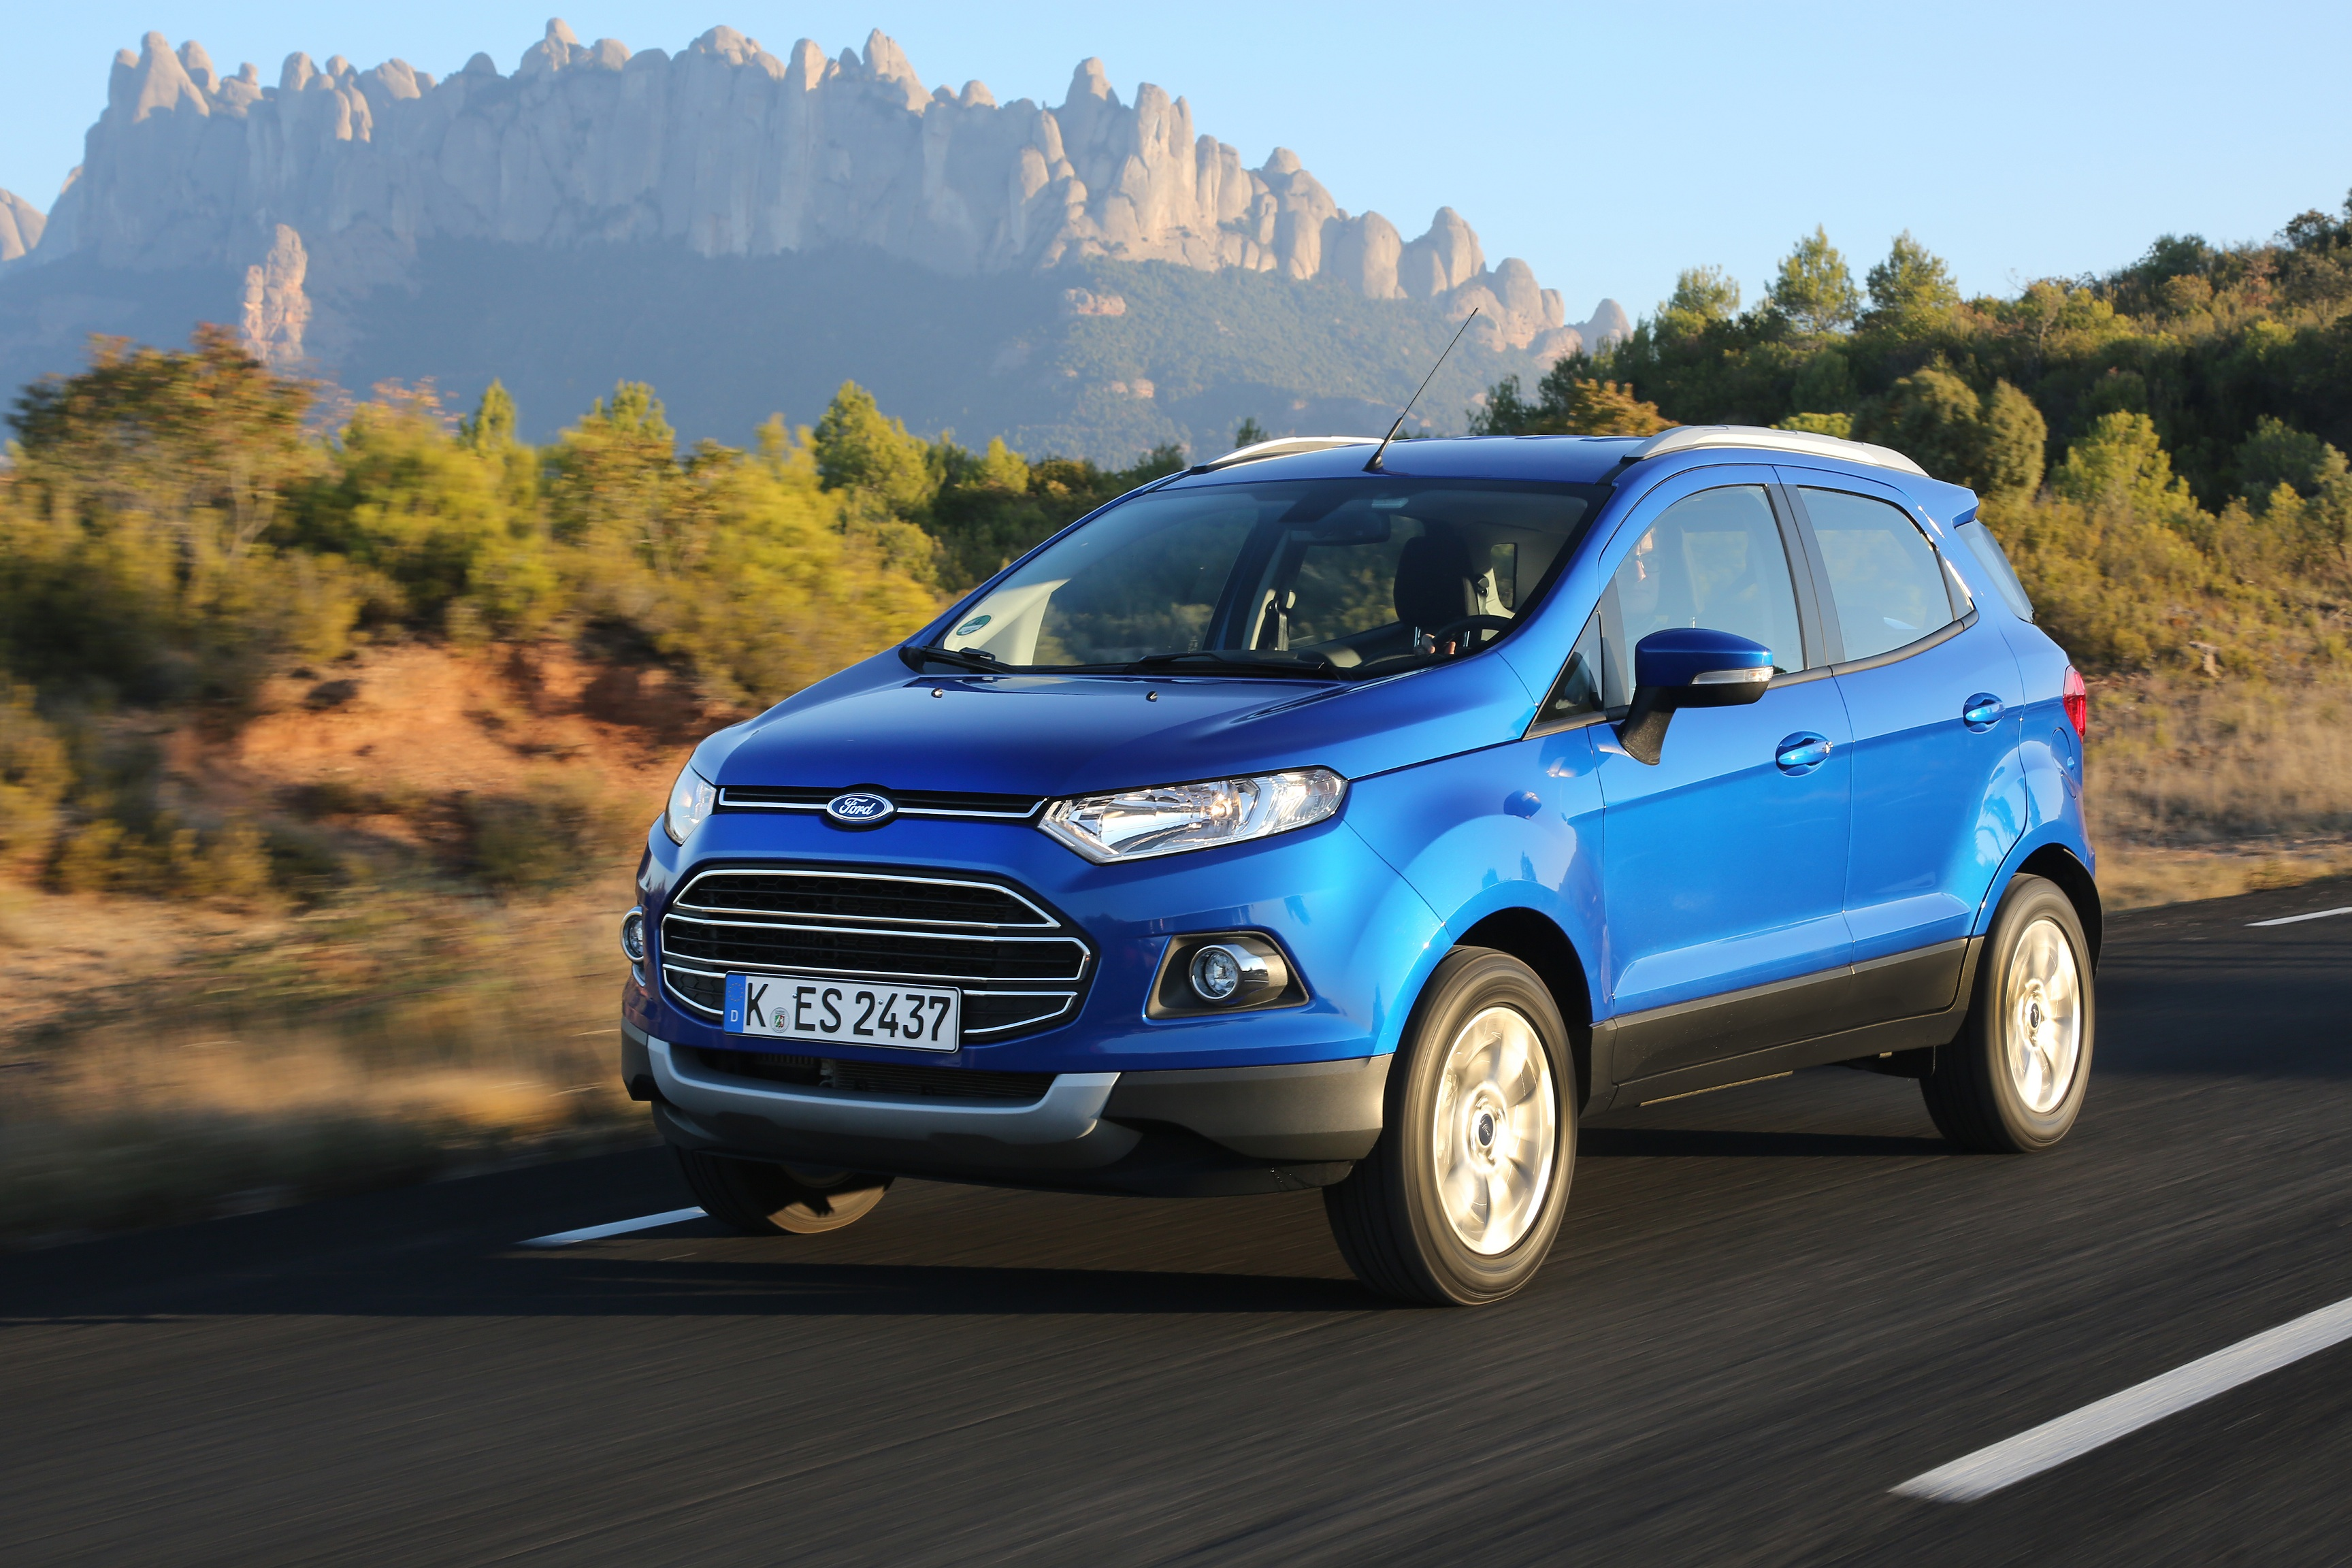 ▷ Ford EcoSport ab sofort mit vielen Detailverbesserungen ... Ford Ecosport Kaufen on ford ranger, ford suv, ford fusion, ford everest, ford c-max, ford econoline, ford figo, ford galaxy, ford escape, ford fiesta, ford explorer, ford ka, ford excursion, ford mondeo, ford flex, ford endeavour, ford gt, ford focus, ford edge, ford mustang,